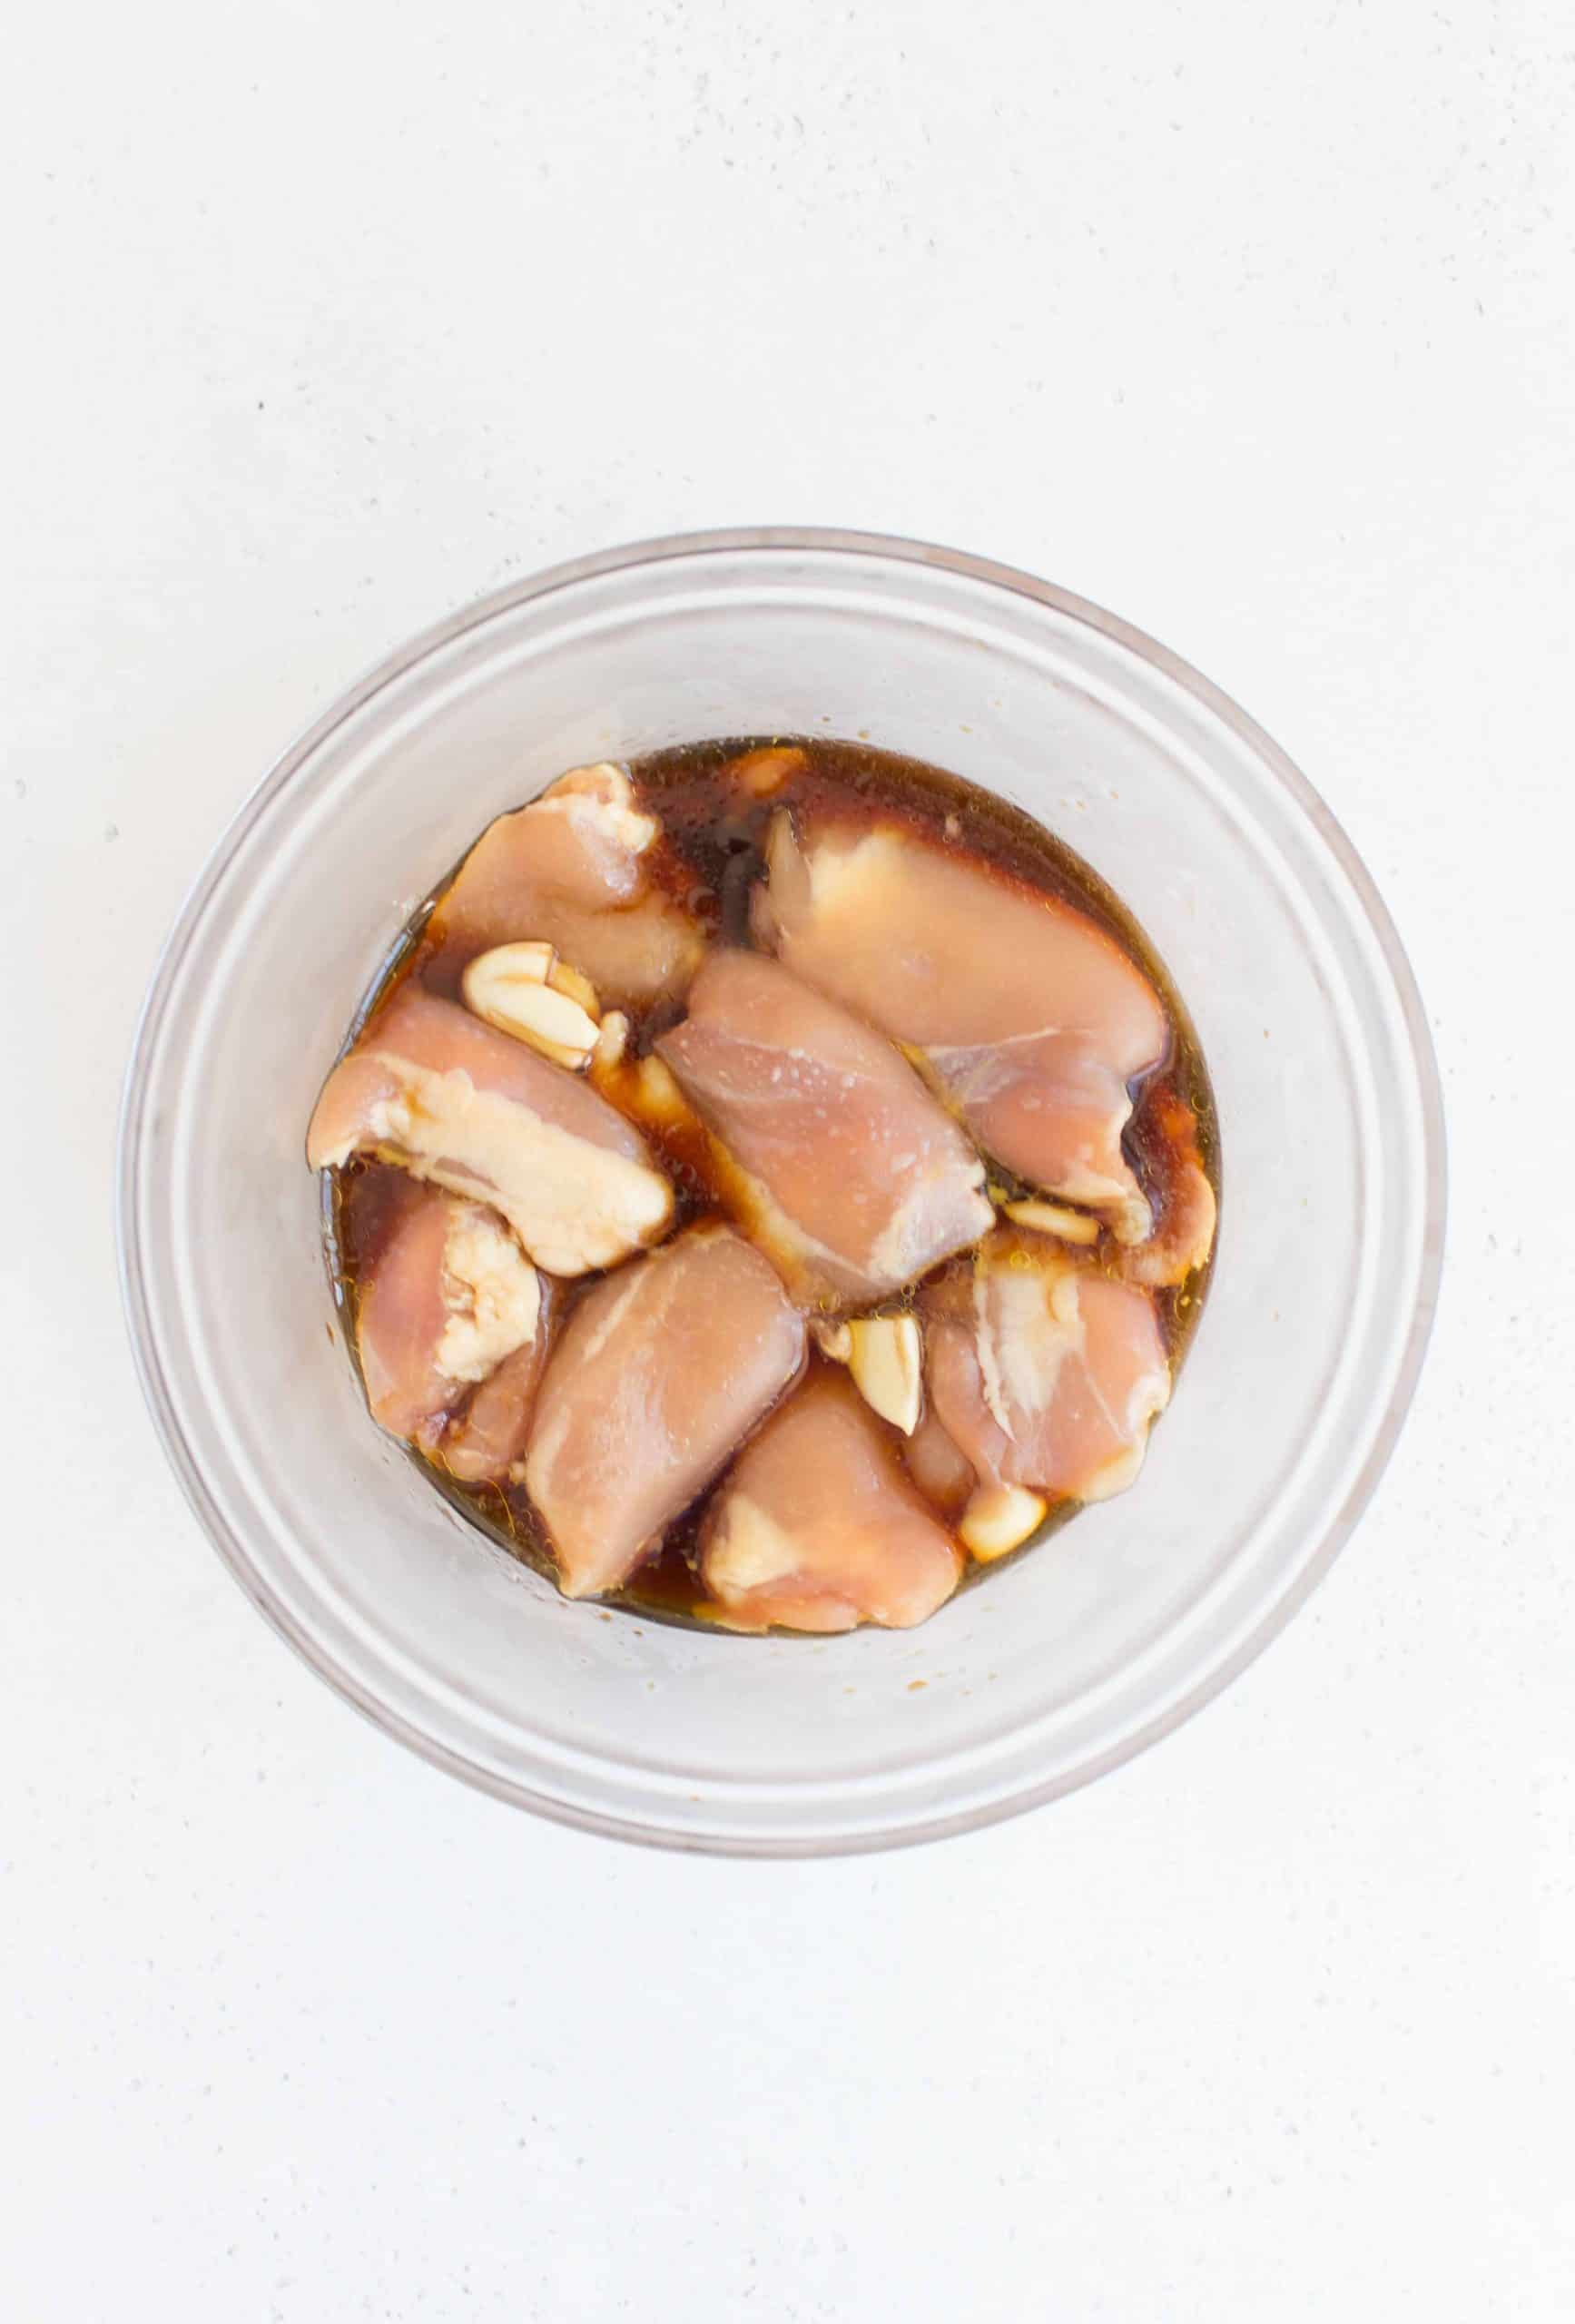 glass bowl marinating chicken thighs